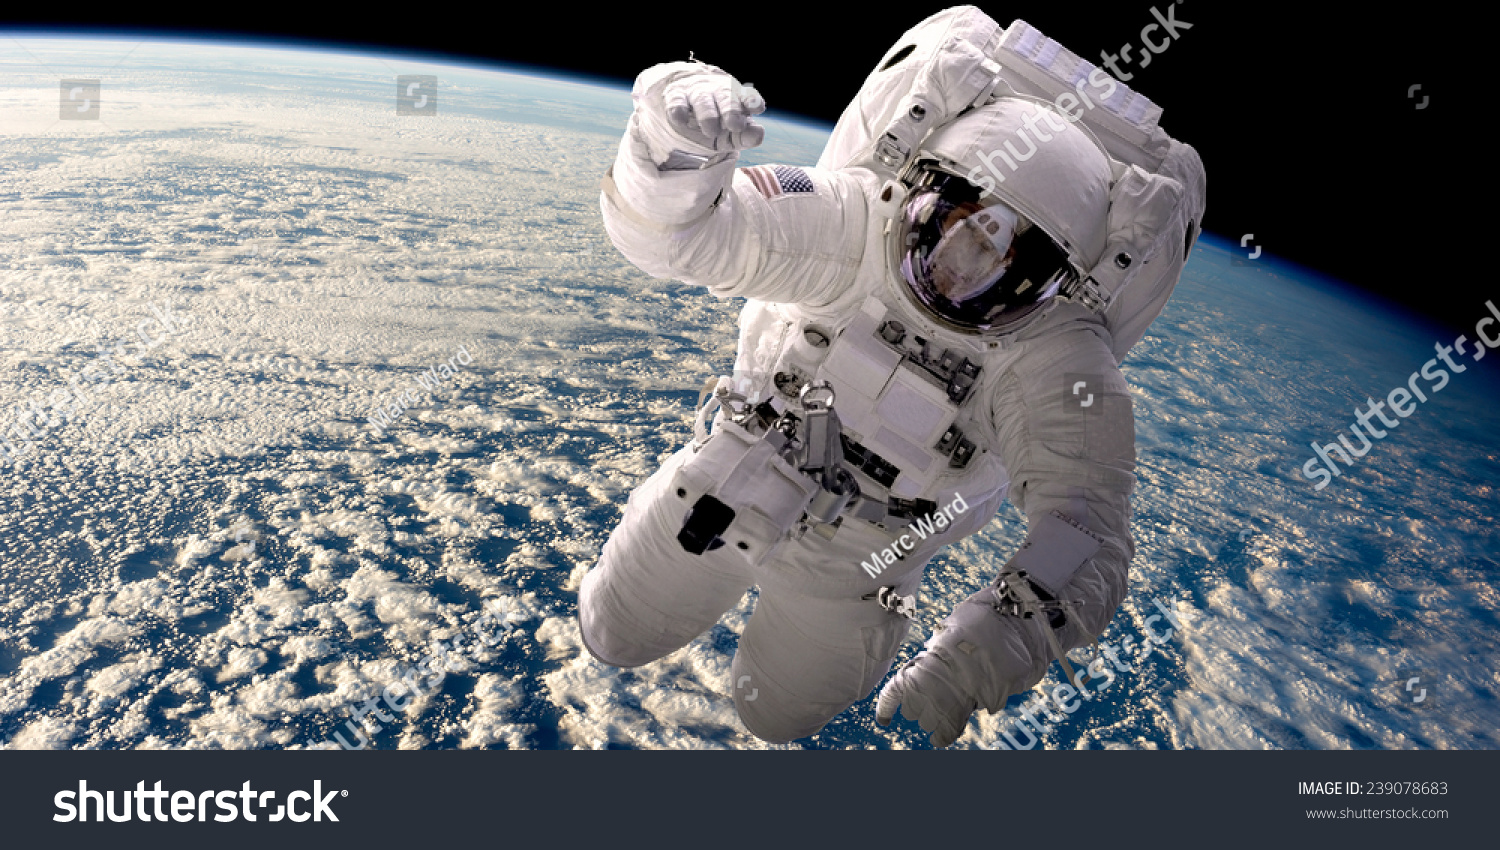 how to become an astronaut in nasa